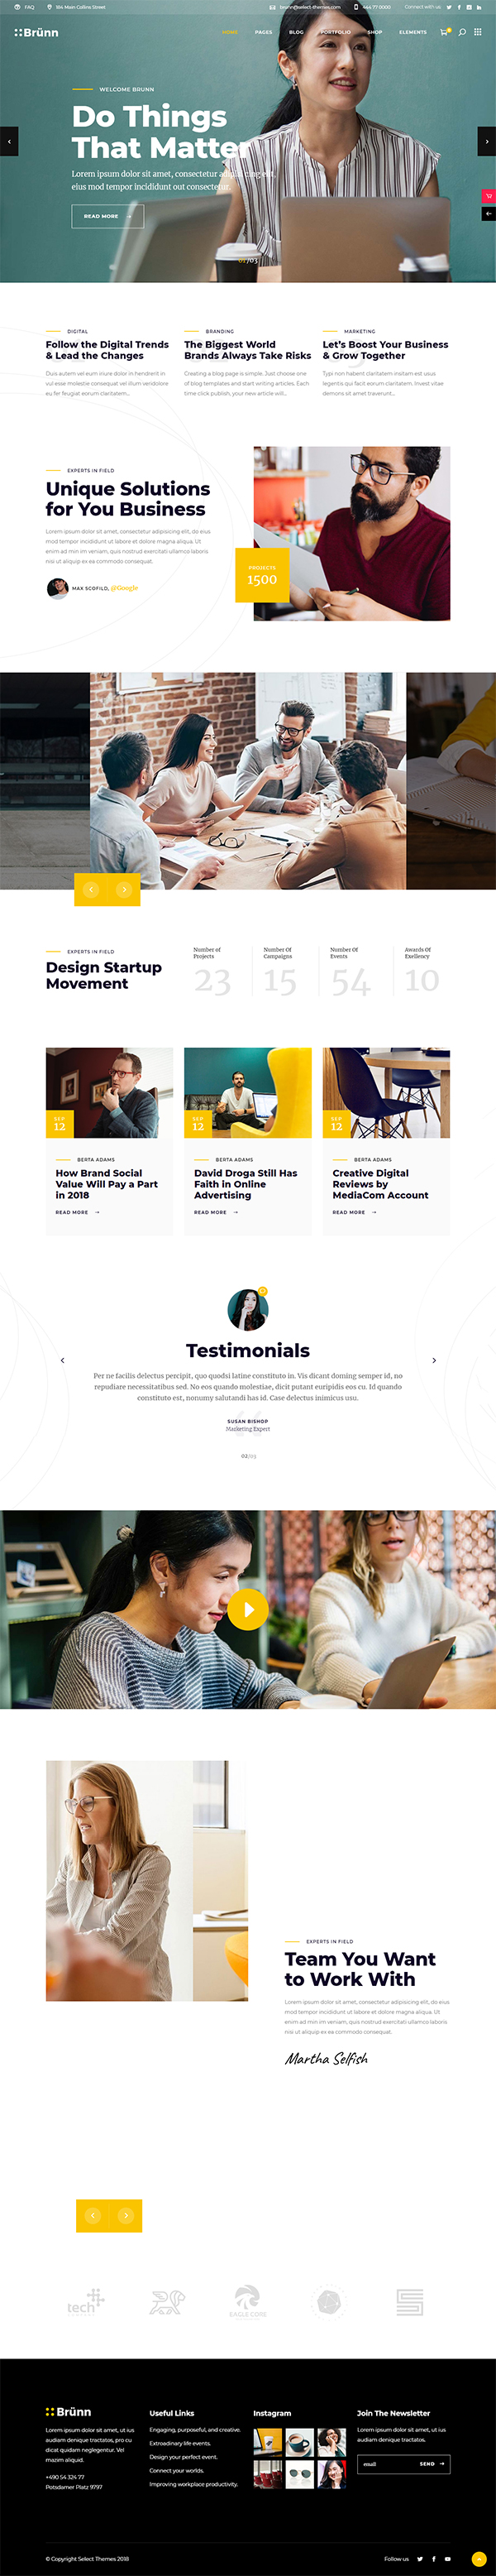 Brno - creative agency theme